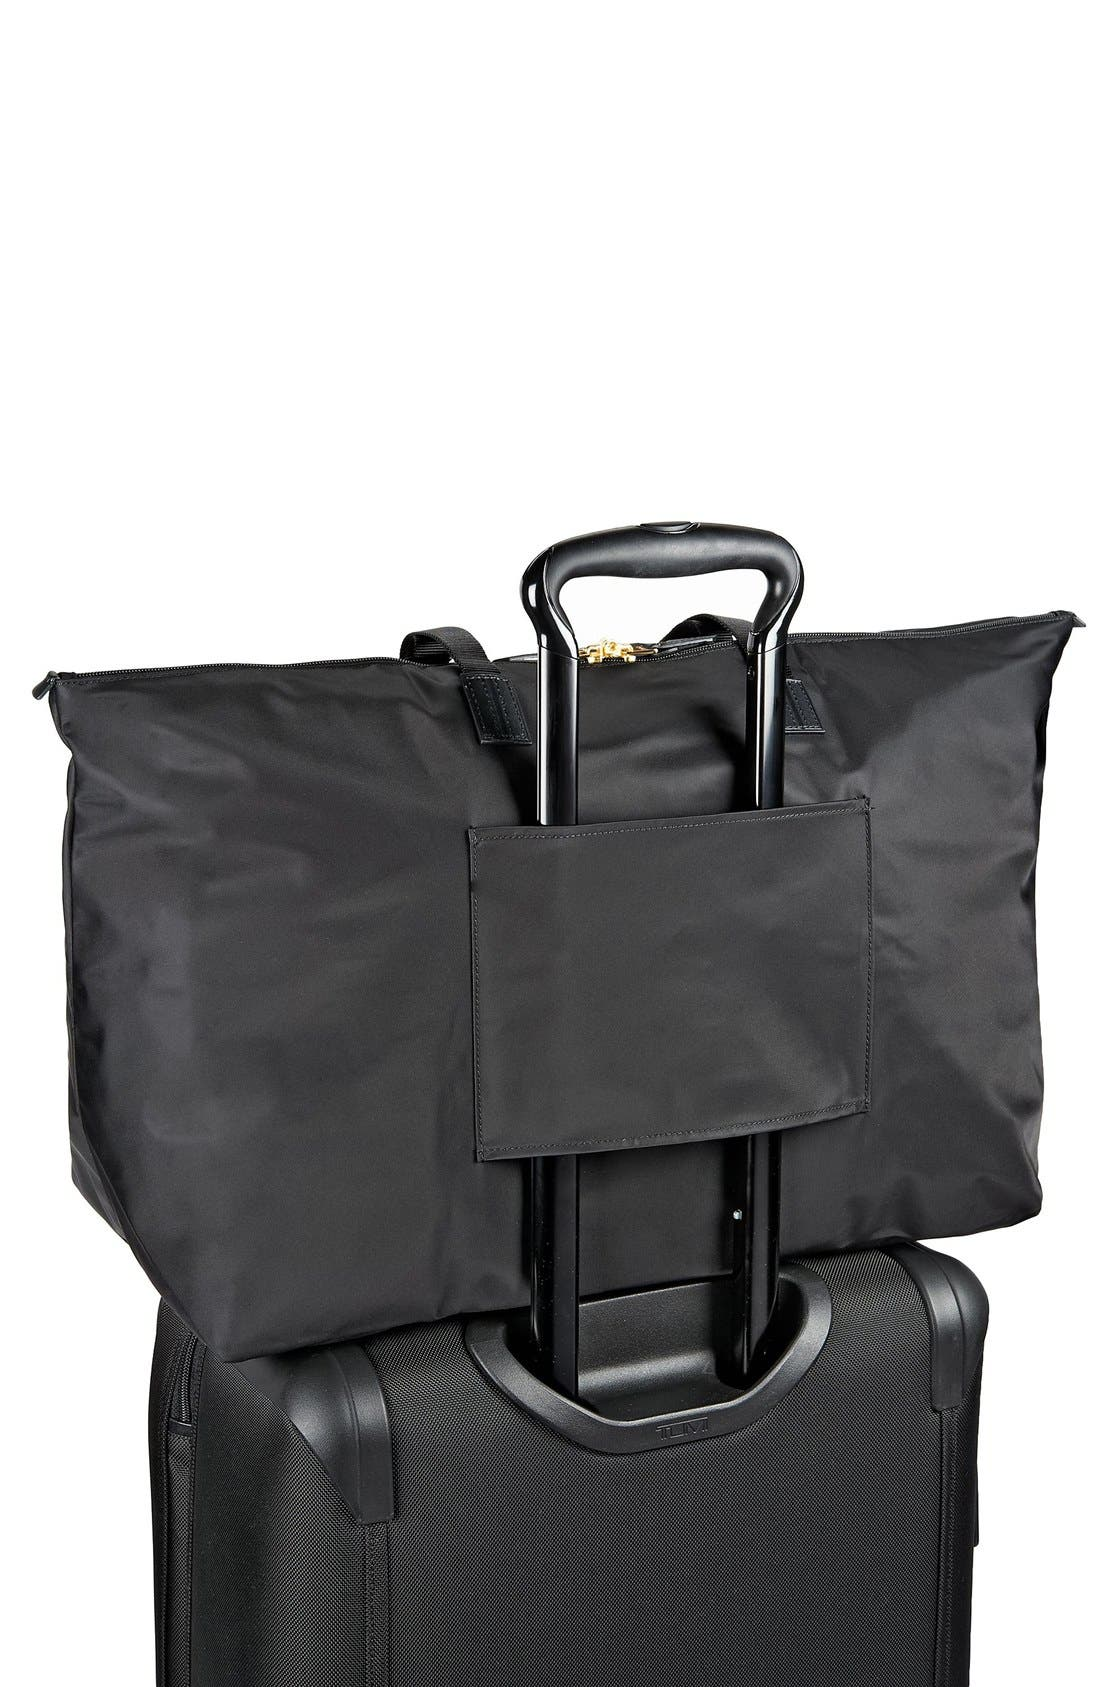 Just in Case Nylon Travel Tote,                             Alternate thumbnail 3, color,                             Black